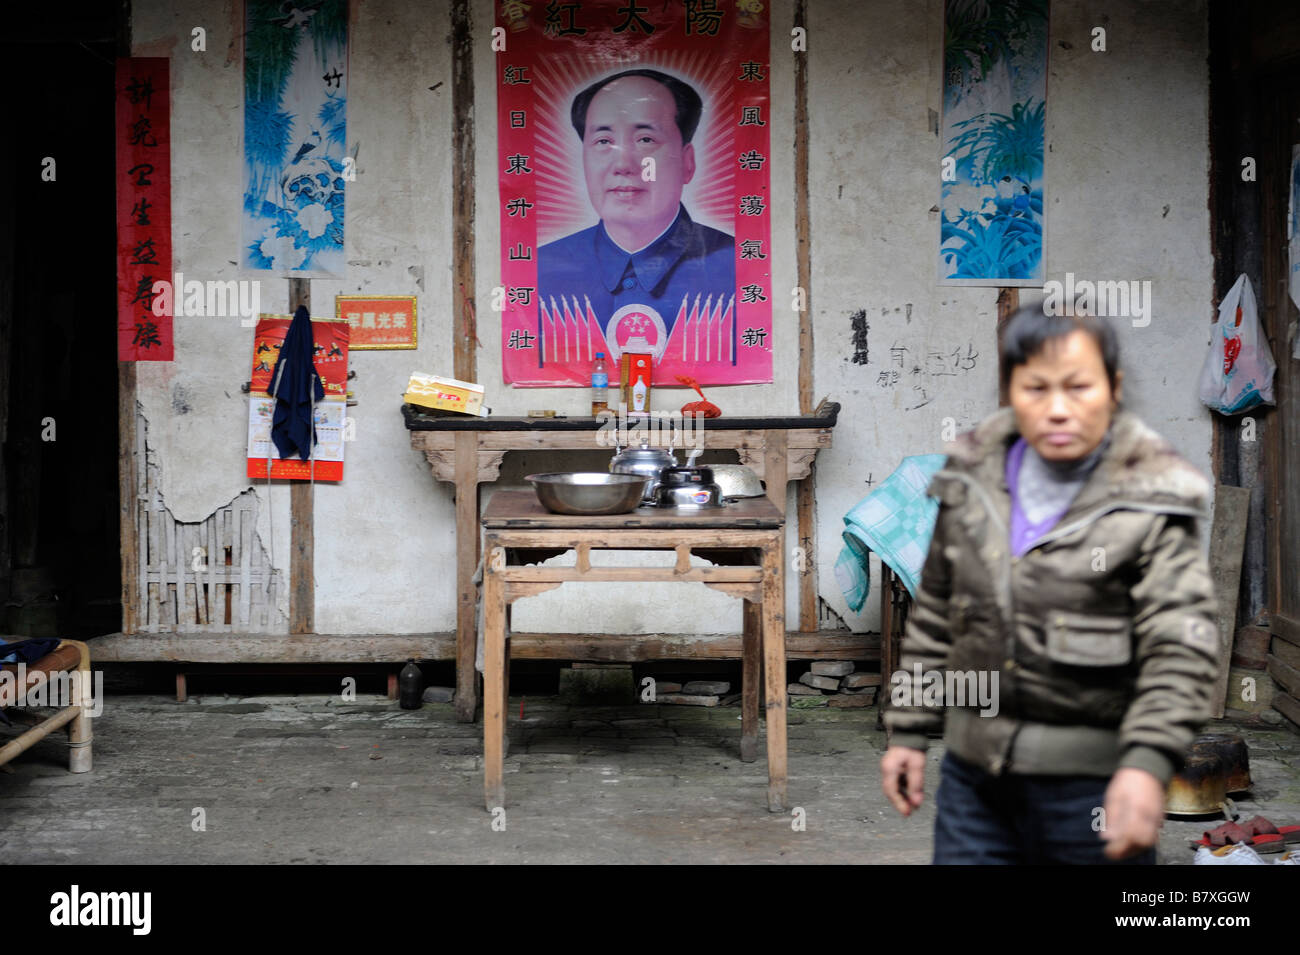 Mao Zedong Stock Photos Images Alamy Baby Music Cellular Phone Portrait Of At A Family Altars In Village Jiangxi China